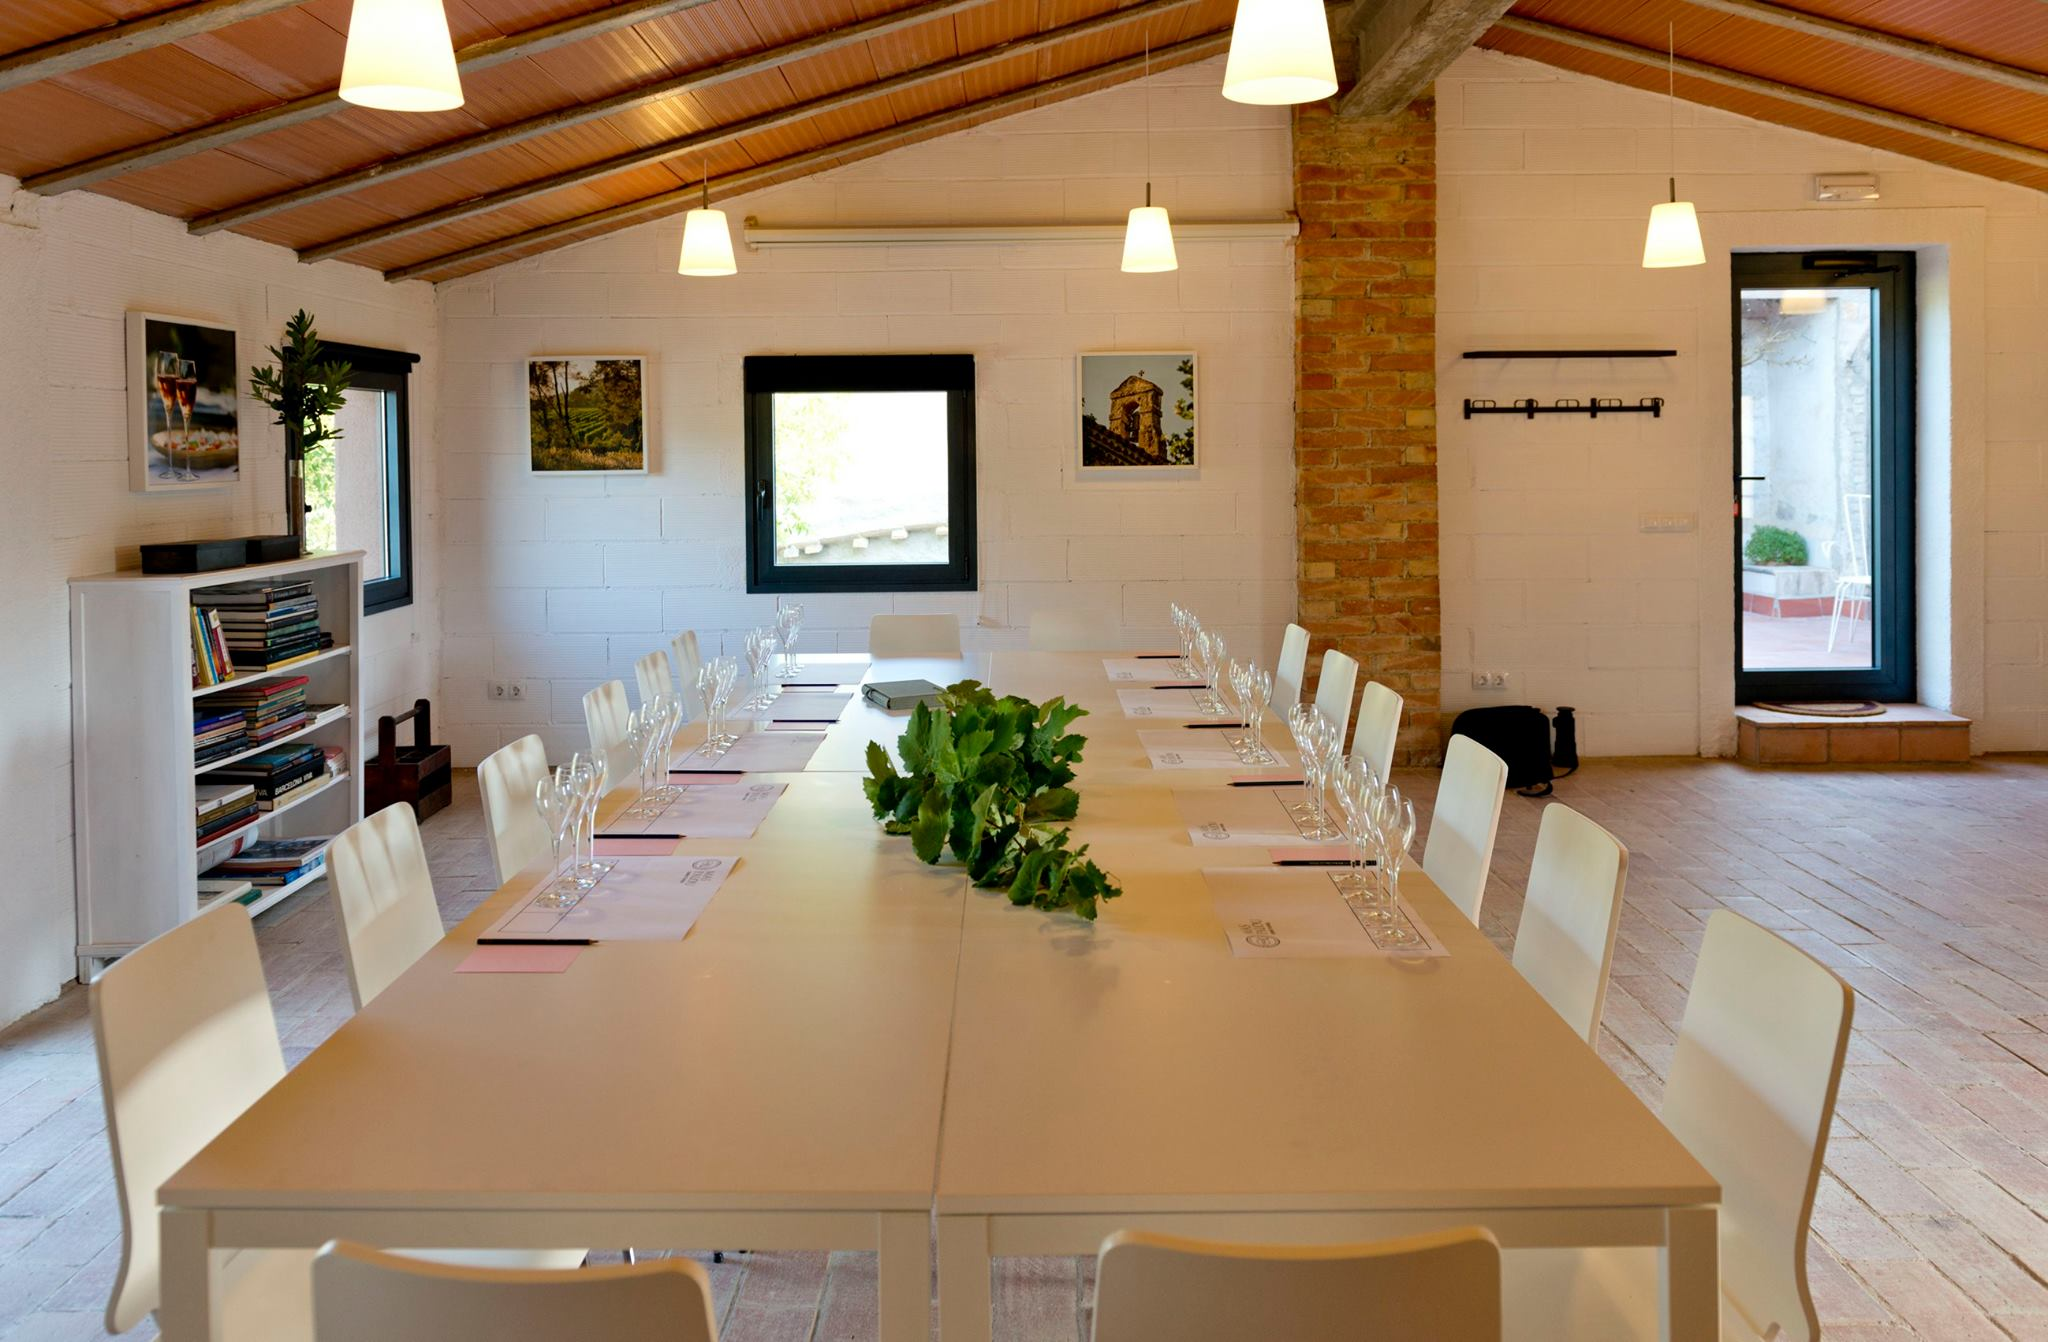 Large meeting table for conference or dinner